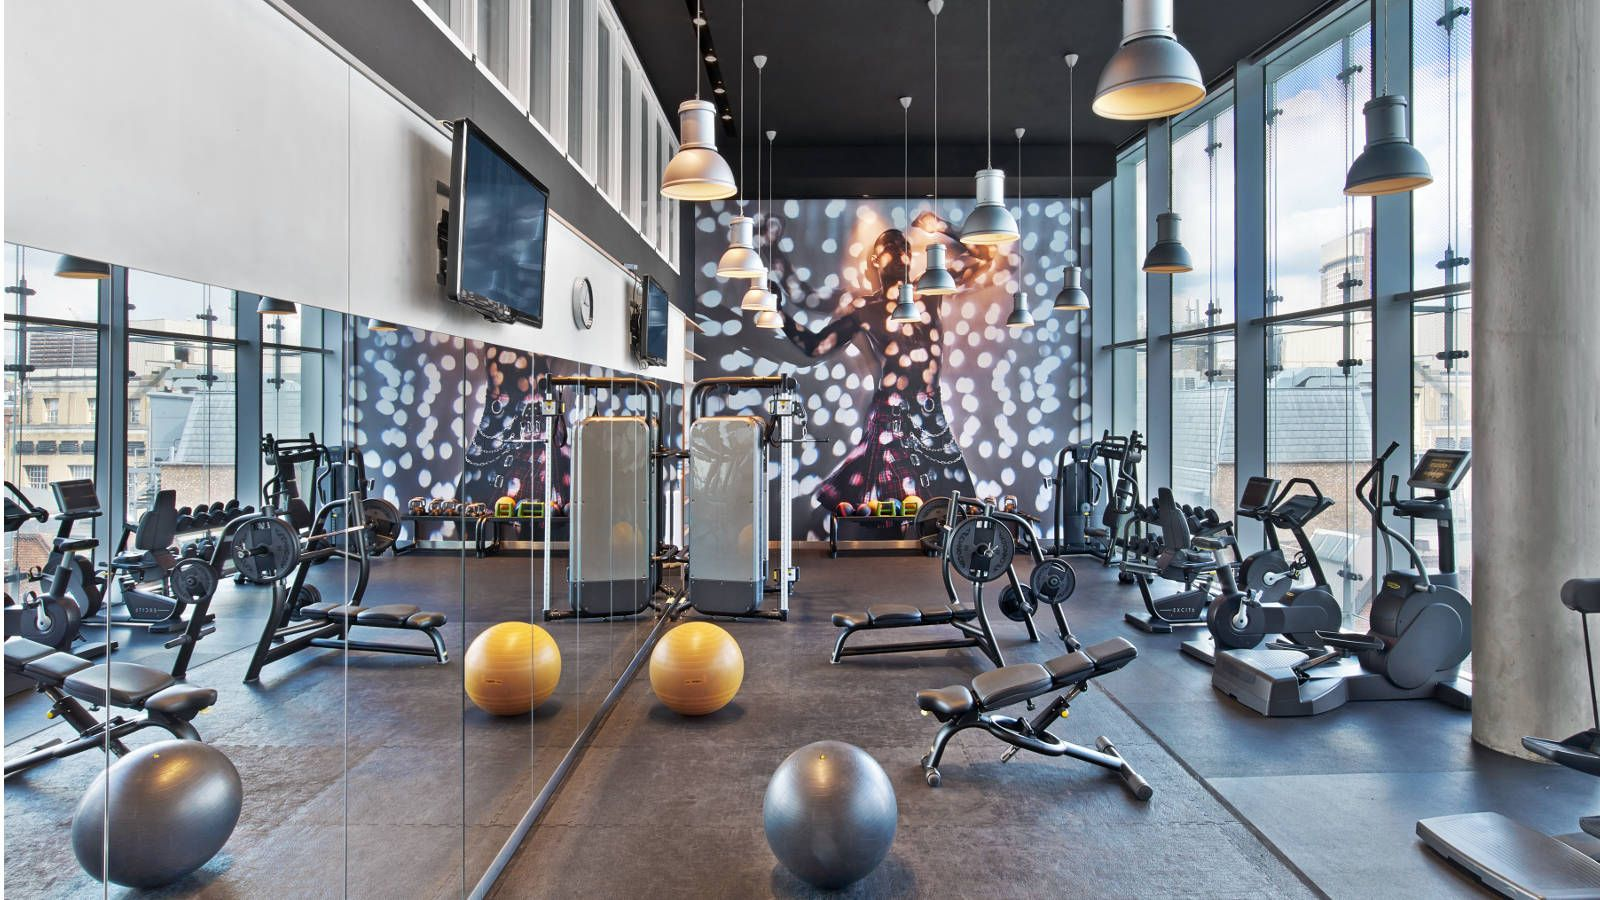 Gym at W London Hotel in Central London